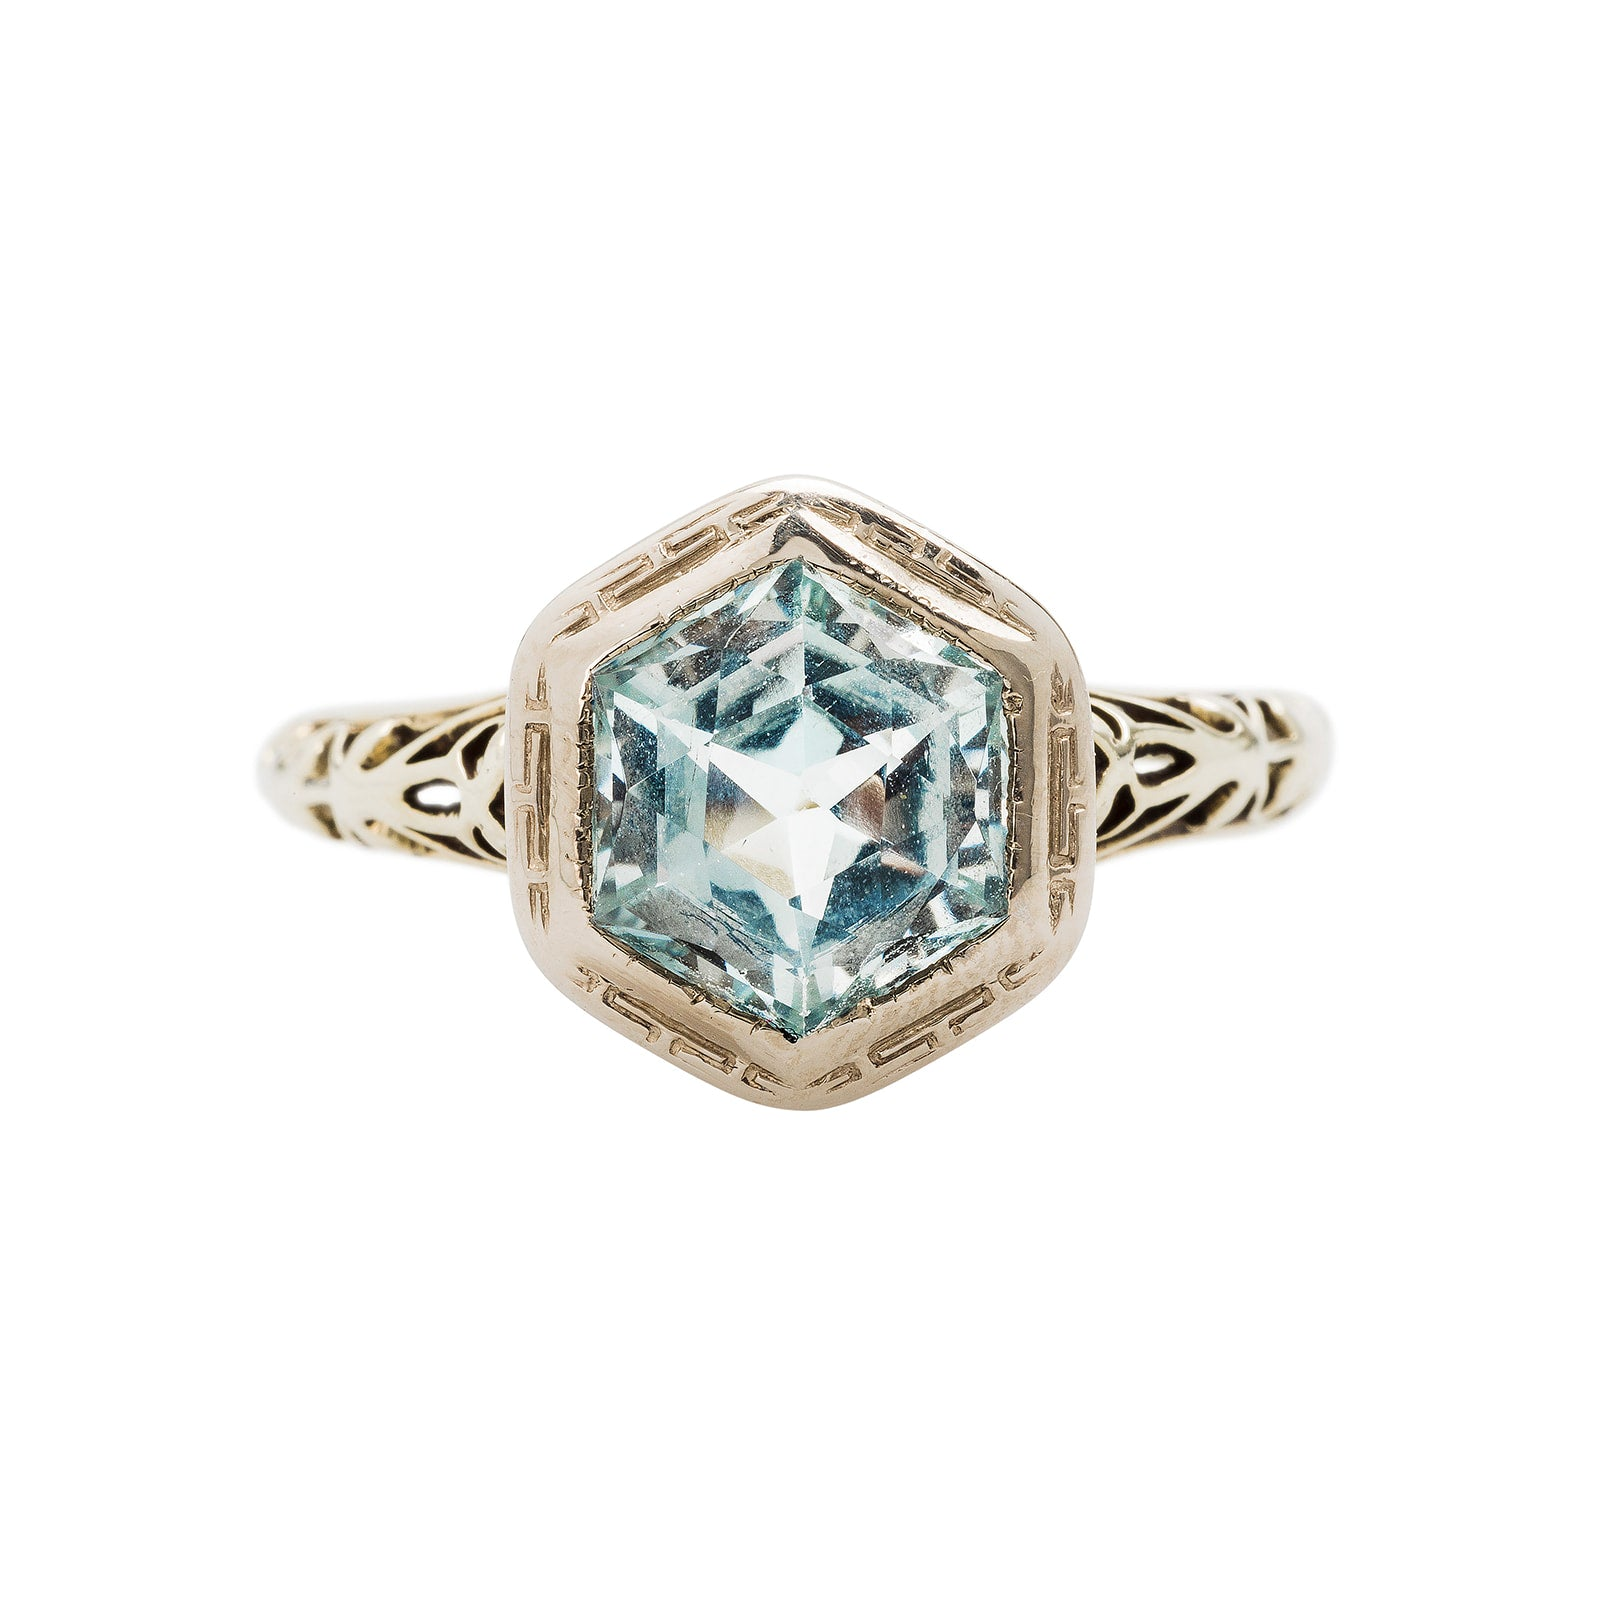 A Lovely Authentic Art Deco Aquamarine and Gold Ring